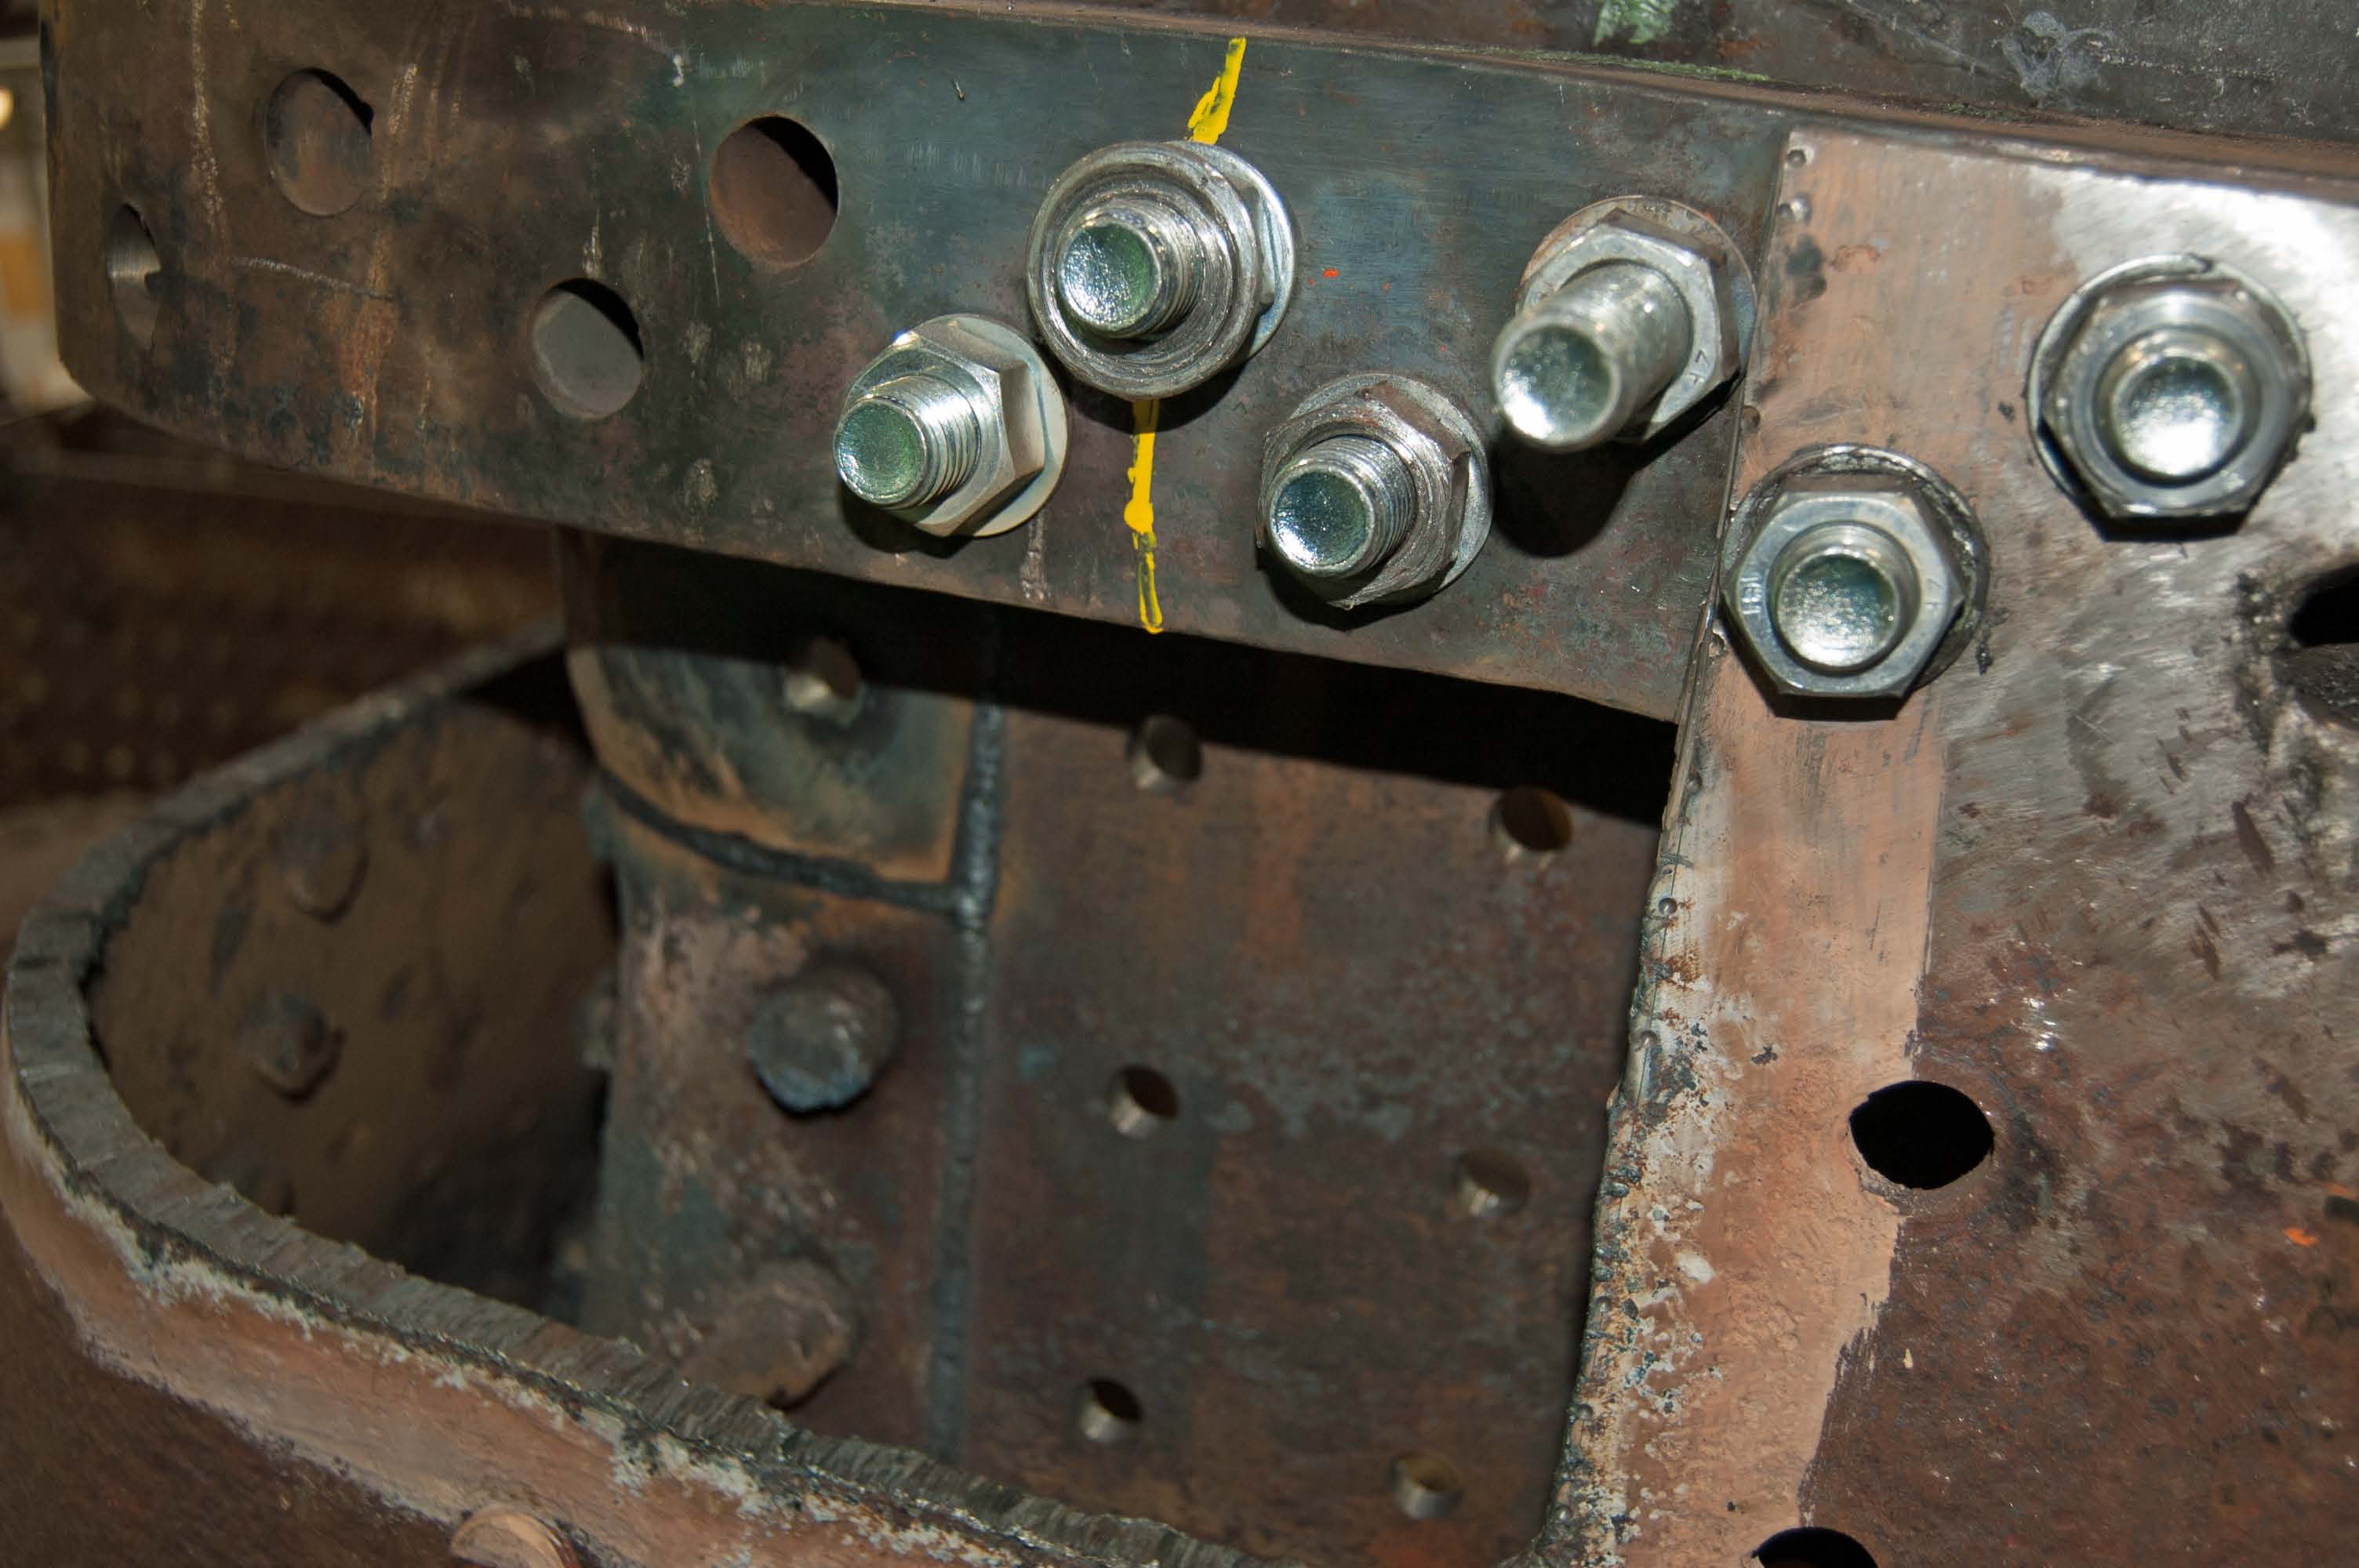 There are still some parts of the outer firebox that need replacing